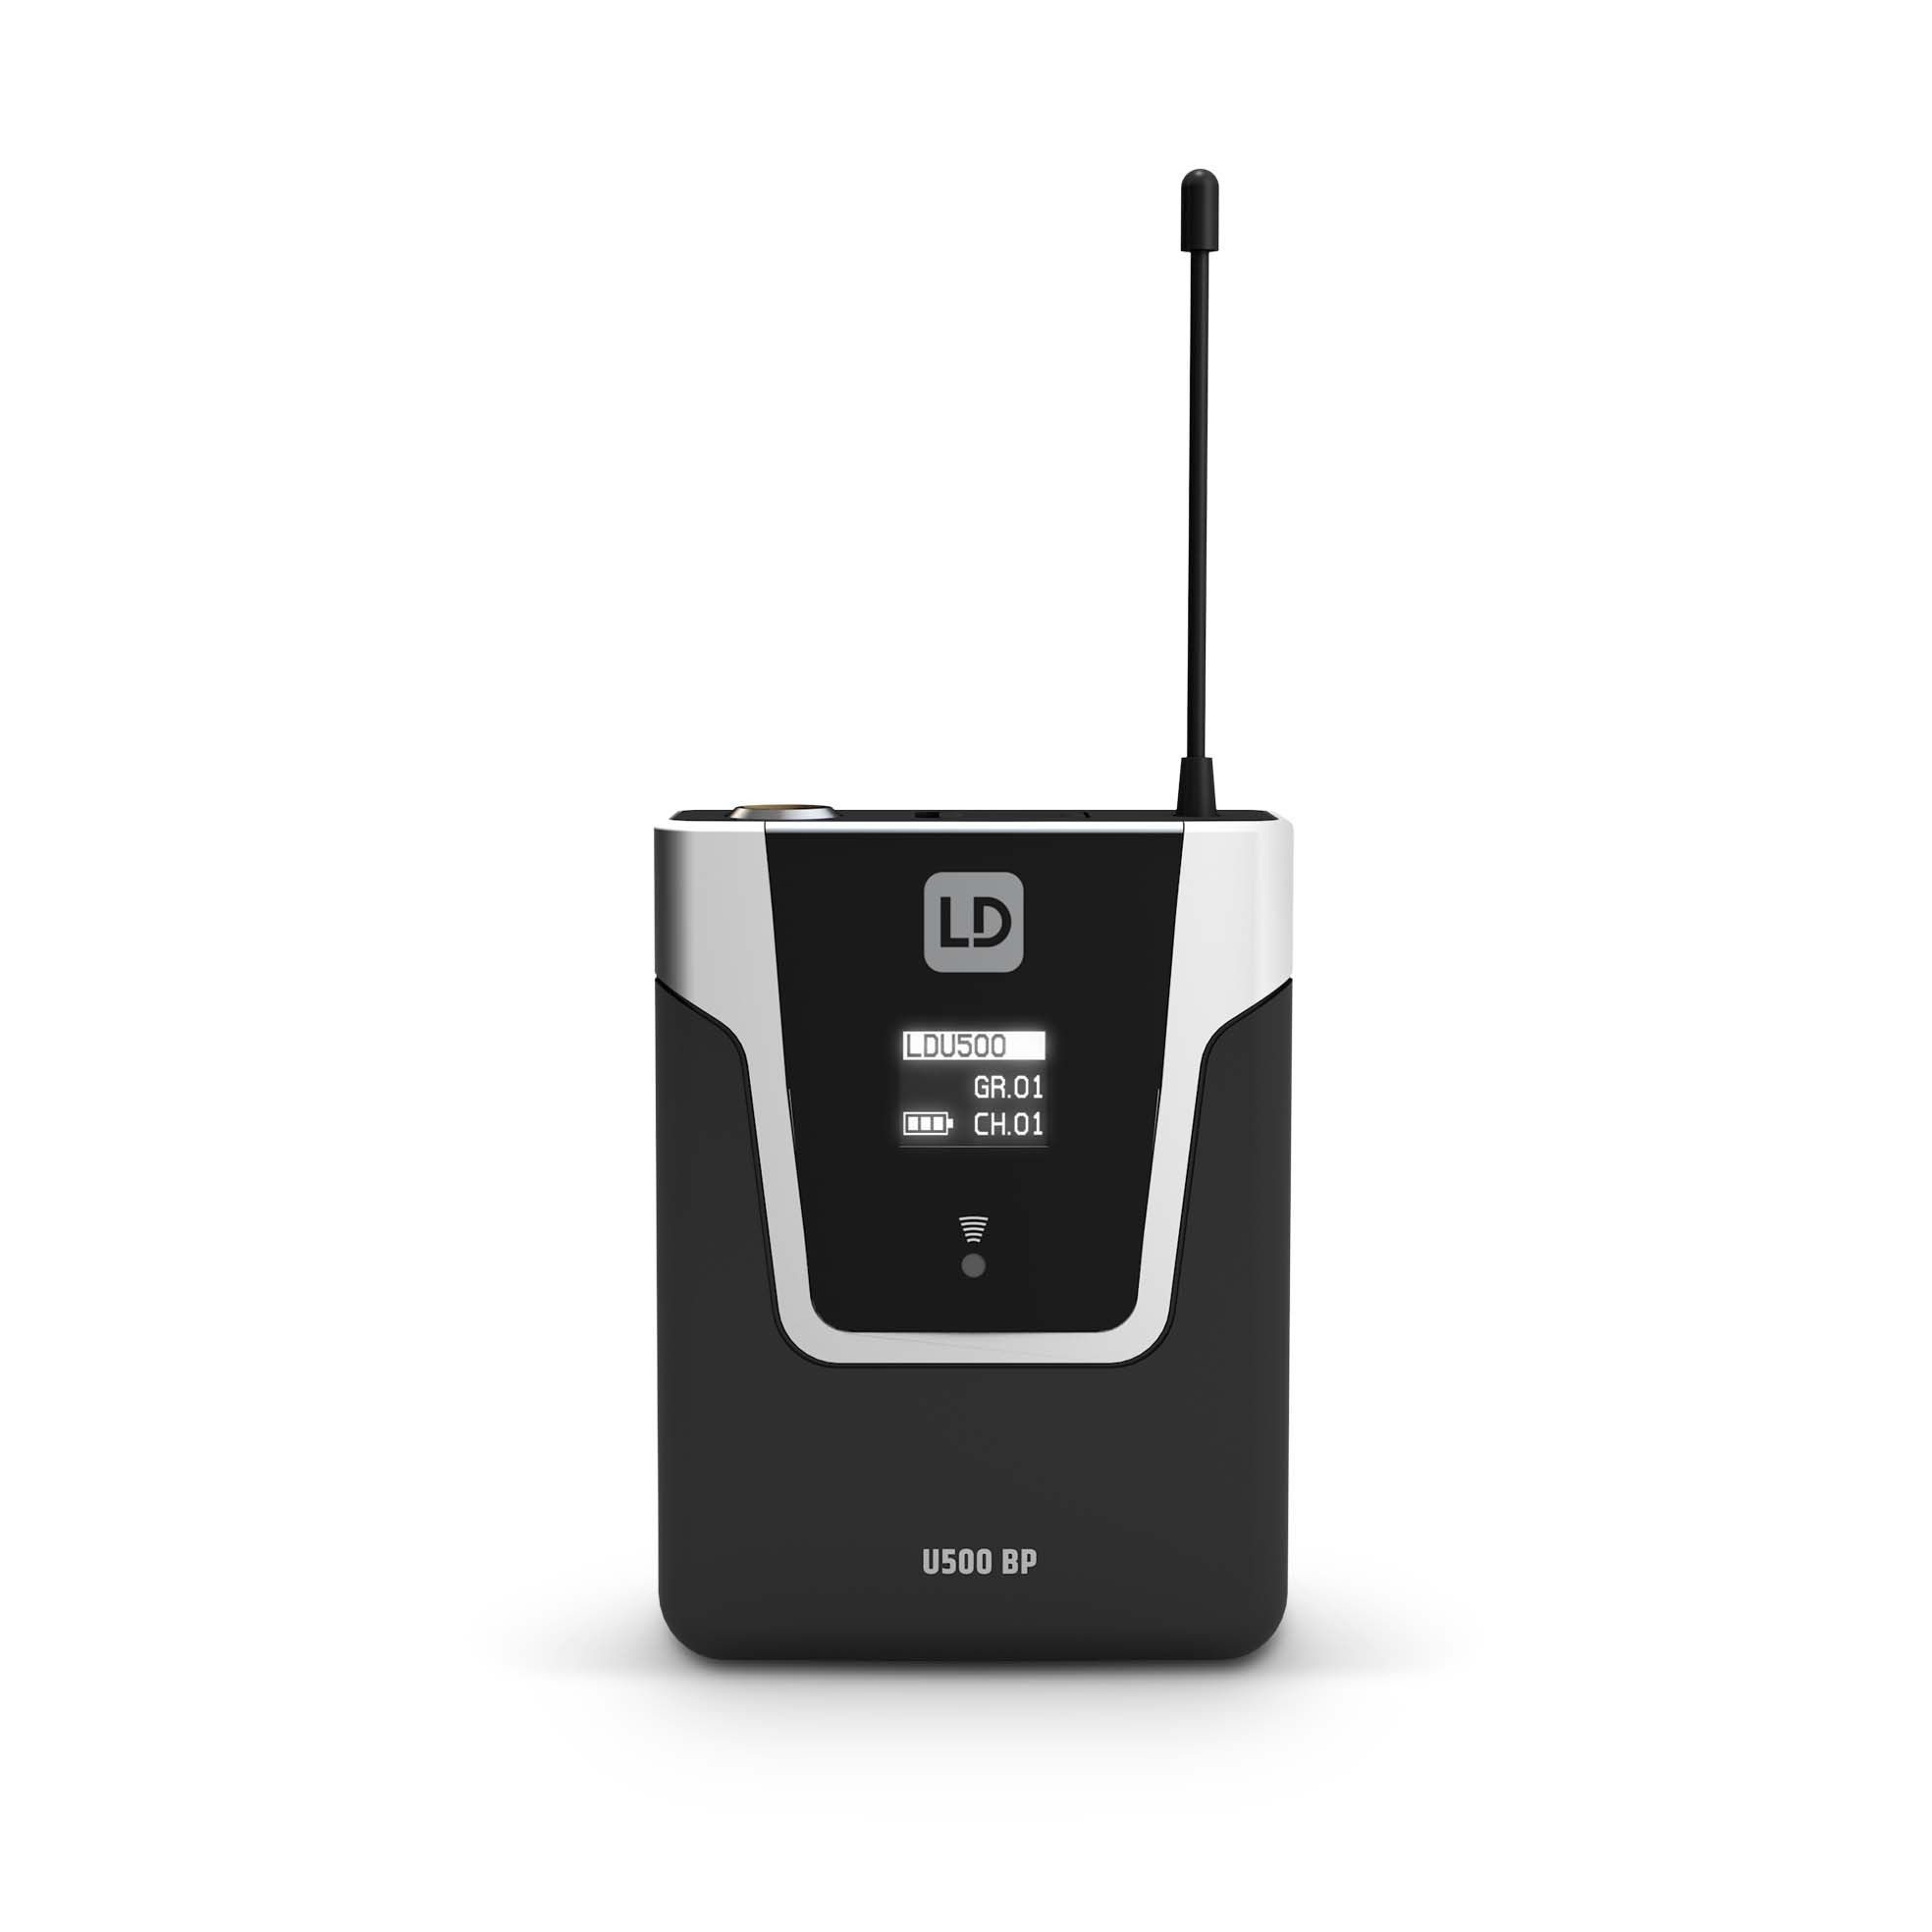 U506 HBH 2 Wireless Microphone System with Bodypack, Headset and Dynamic Handheld Microphone